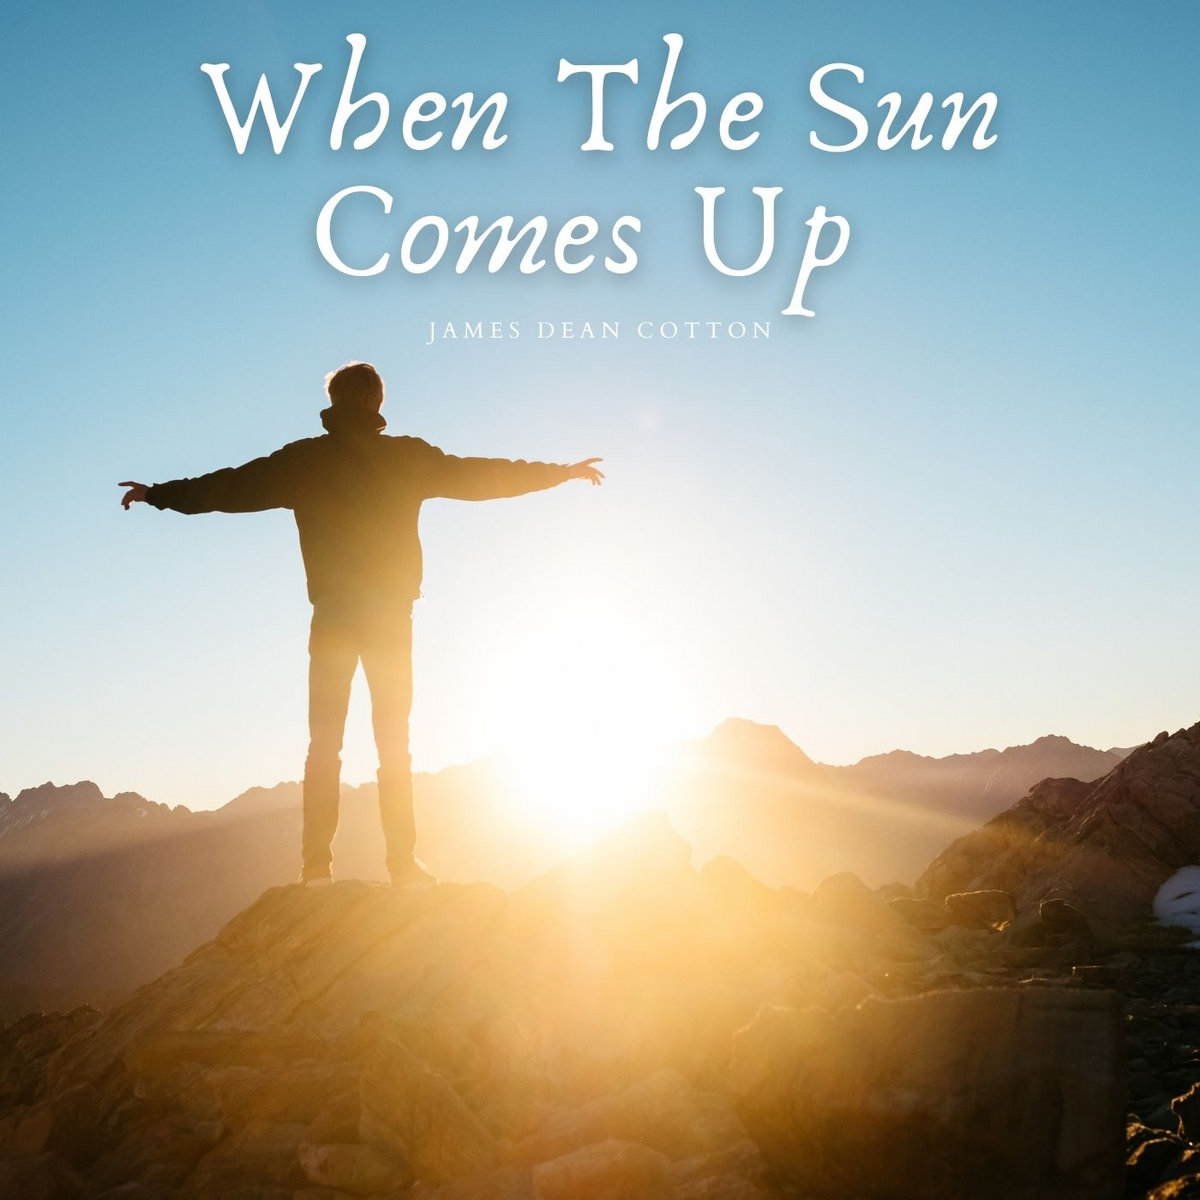 When The Sun Comes Up by James Dean Cotton